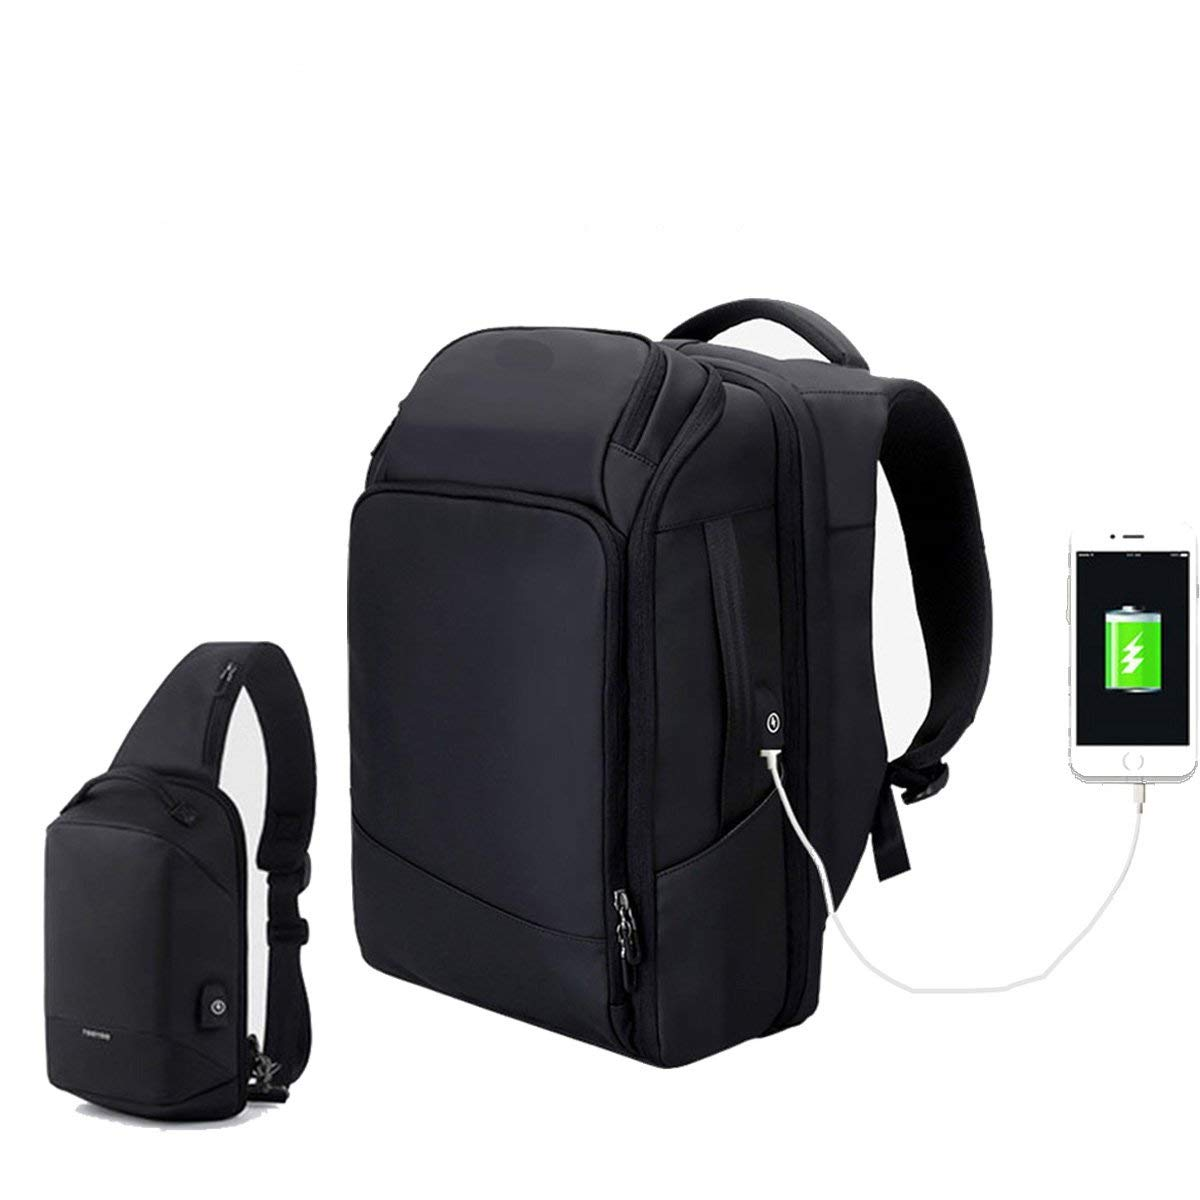 17inch Laptop Backpack With Chest Bag - Anti Theft Backpack Waterproof Rain Cover - GPS Location- USB Charging Port - Business College Travel School Backpack - Black Lightweight Backpack for Men Wome